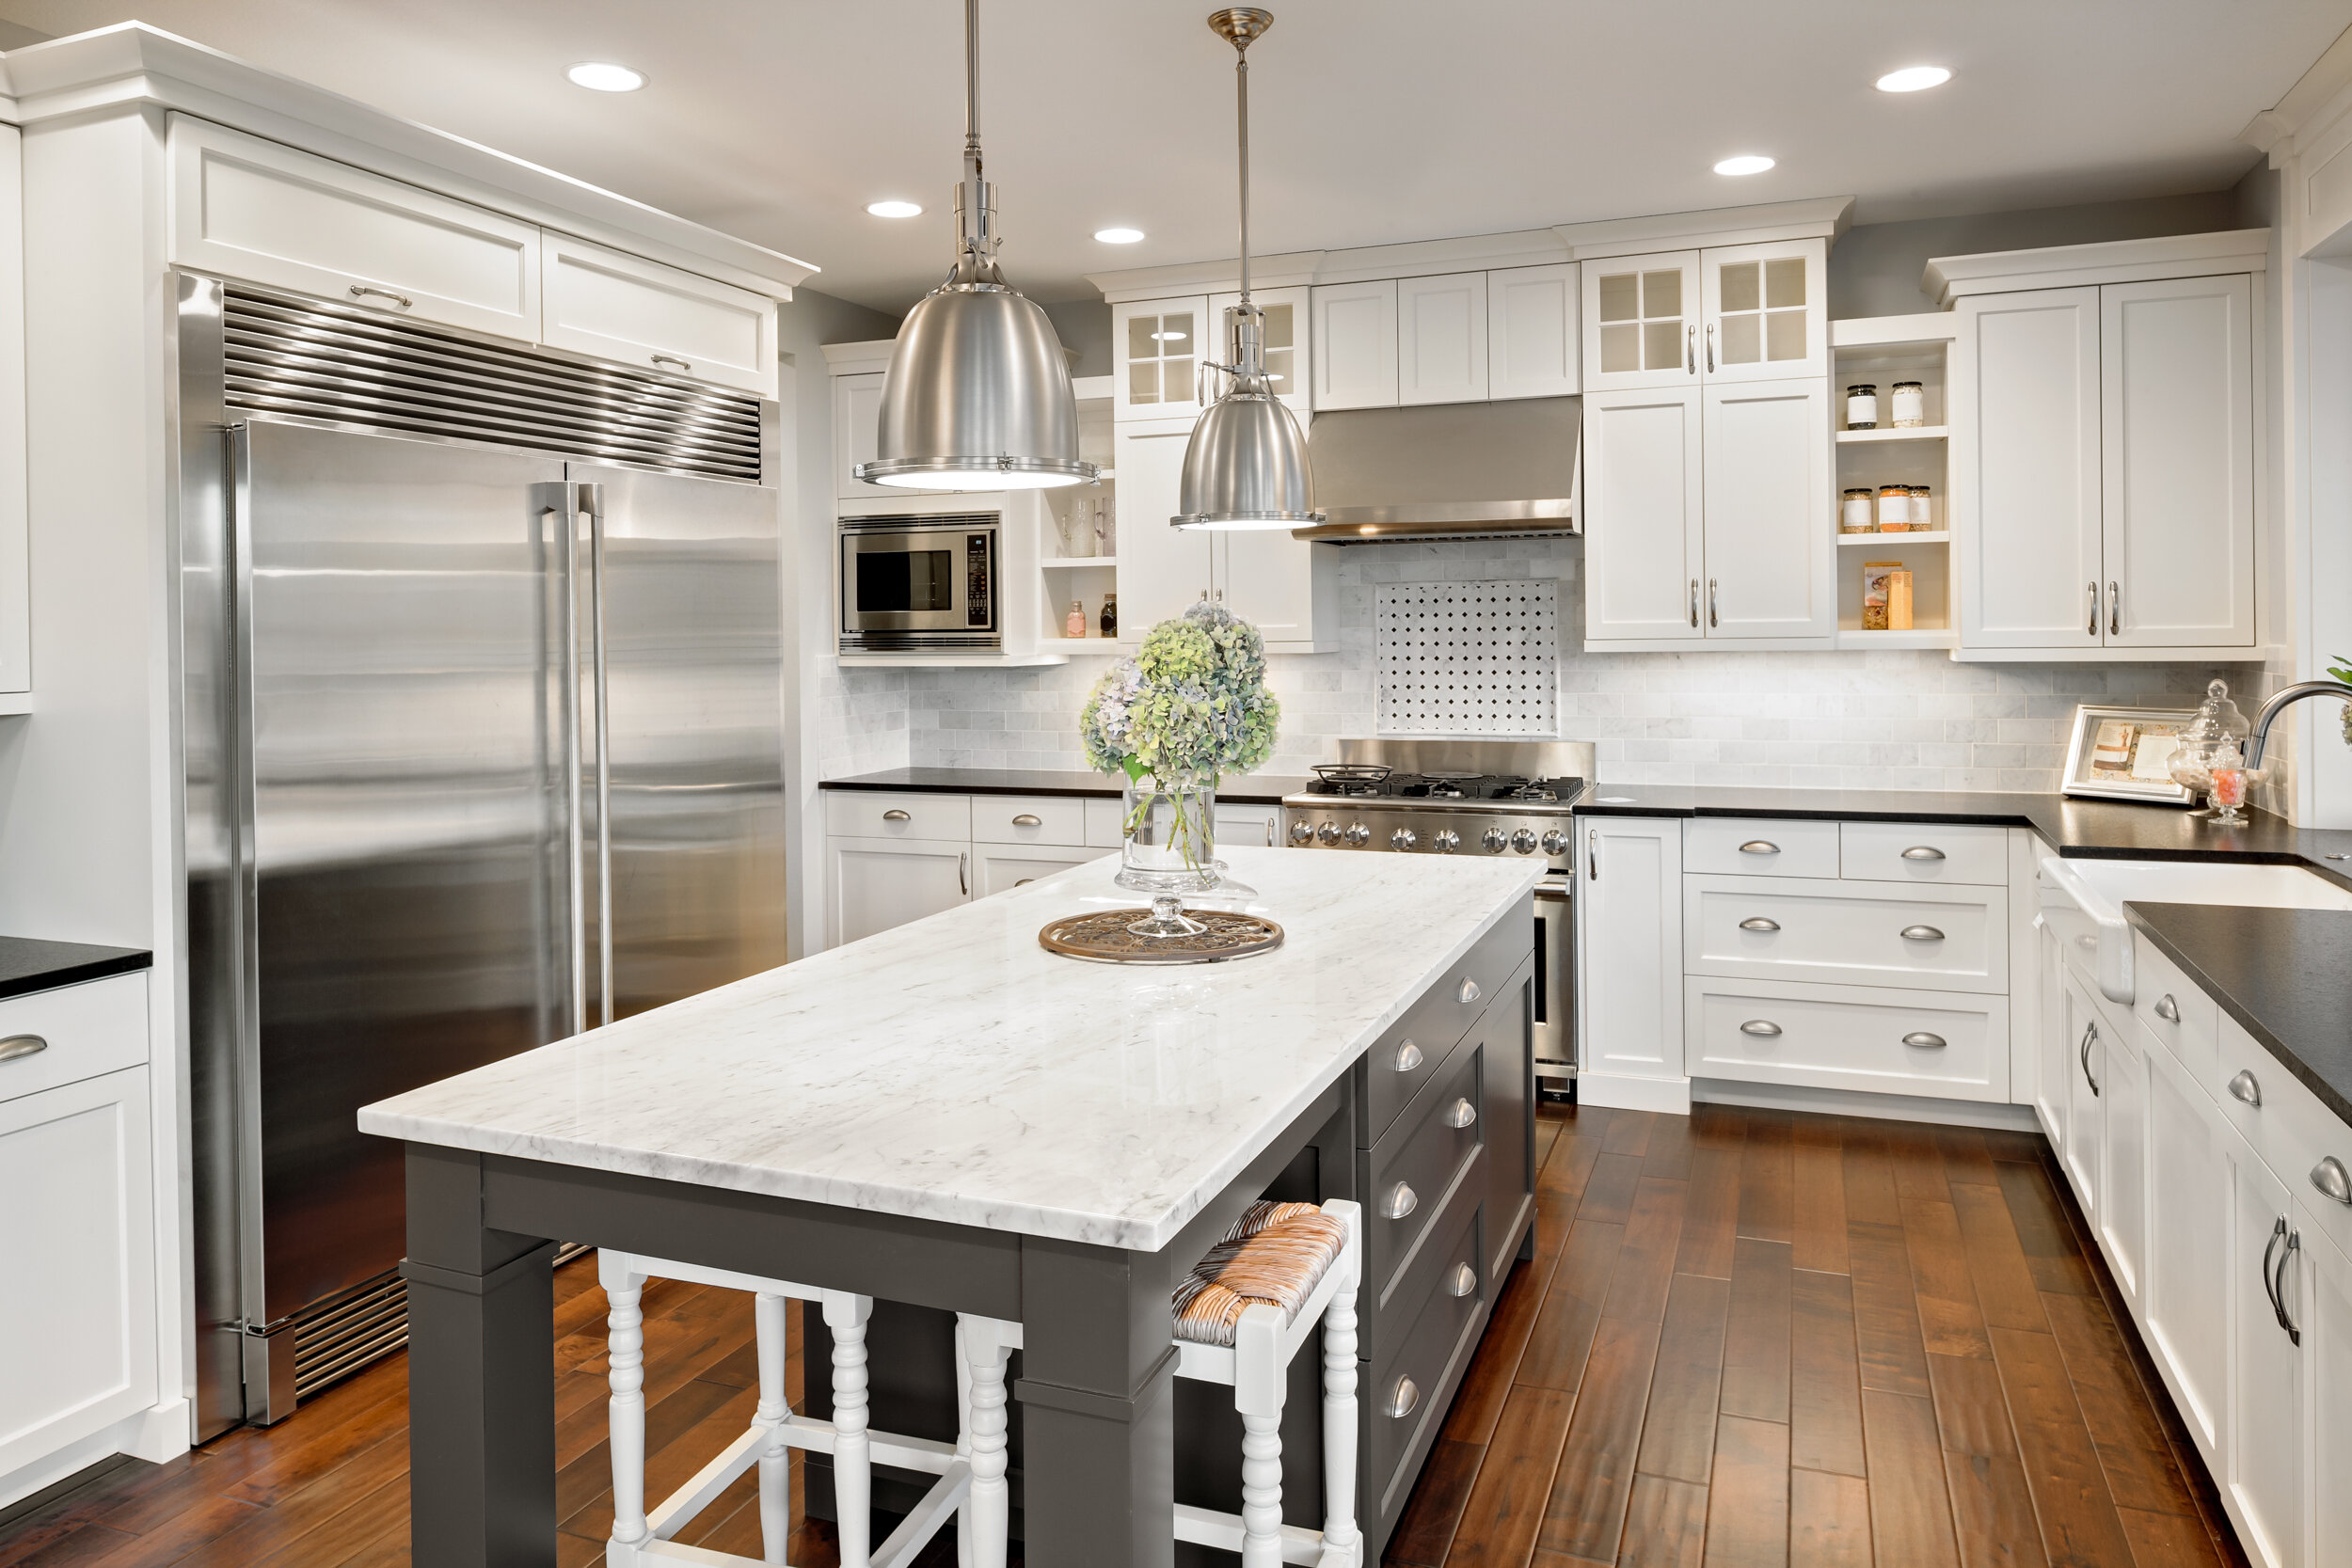 5 Kitchen Remodeling Tips And A Guide Dvd Interior Design Interior Design Custom Cabinetry Dvd Interior Design Llc Is A Greenwich Ct Based Interior Design Firm Luxury Modern Kitchen